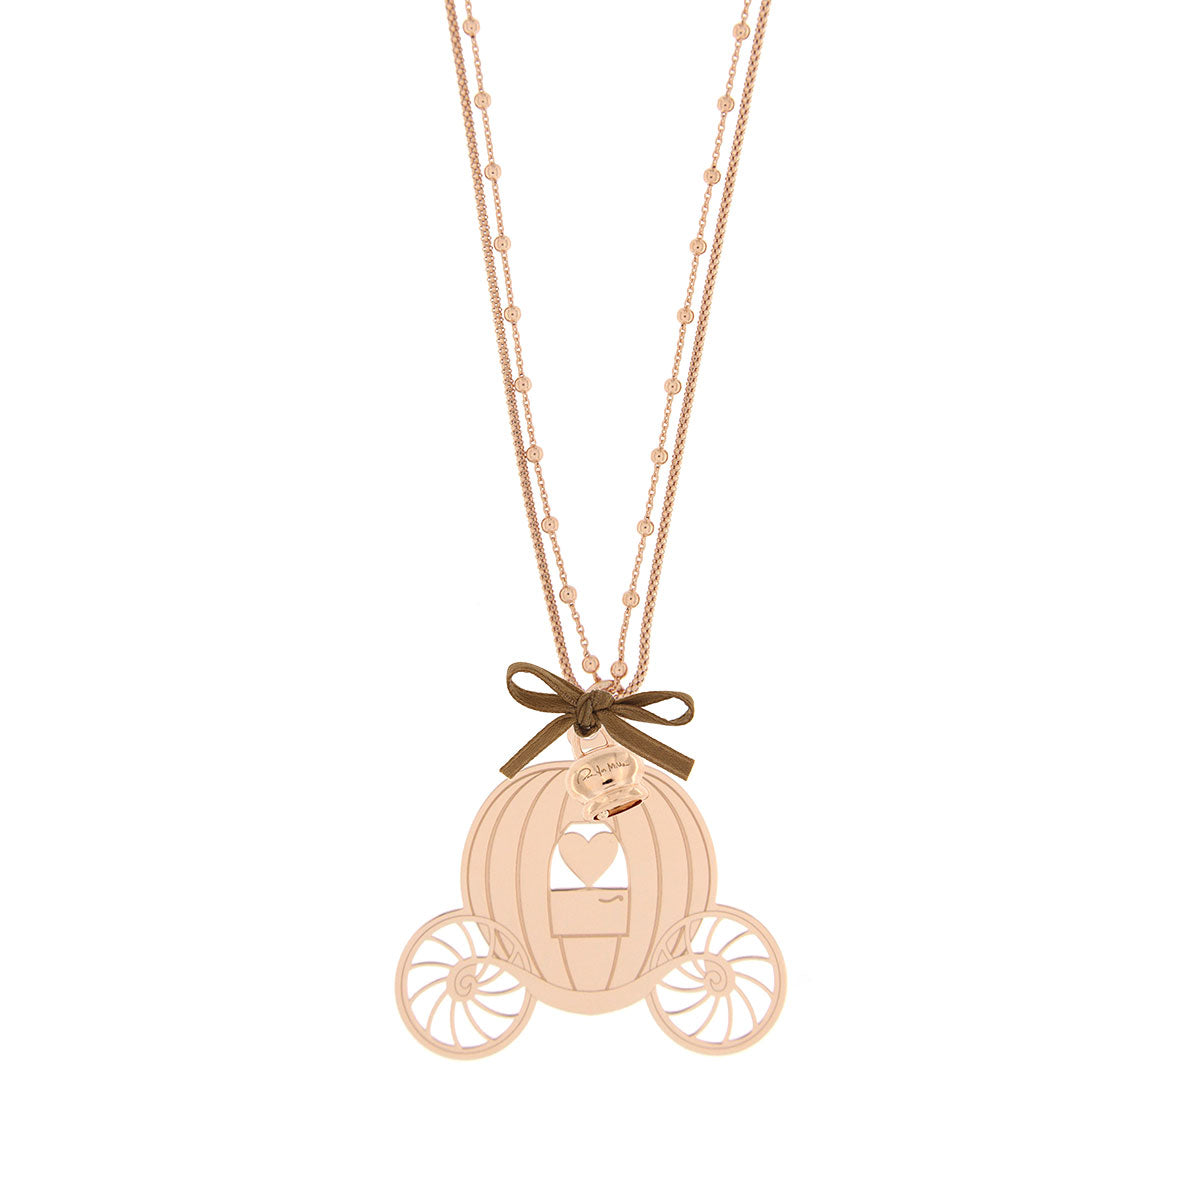 Necklaces - Double Chain Necklace with Carriage - 1 | Rue des Mille